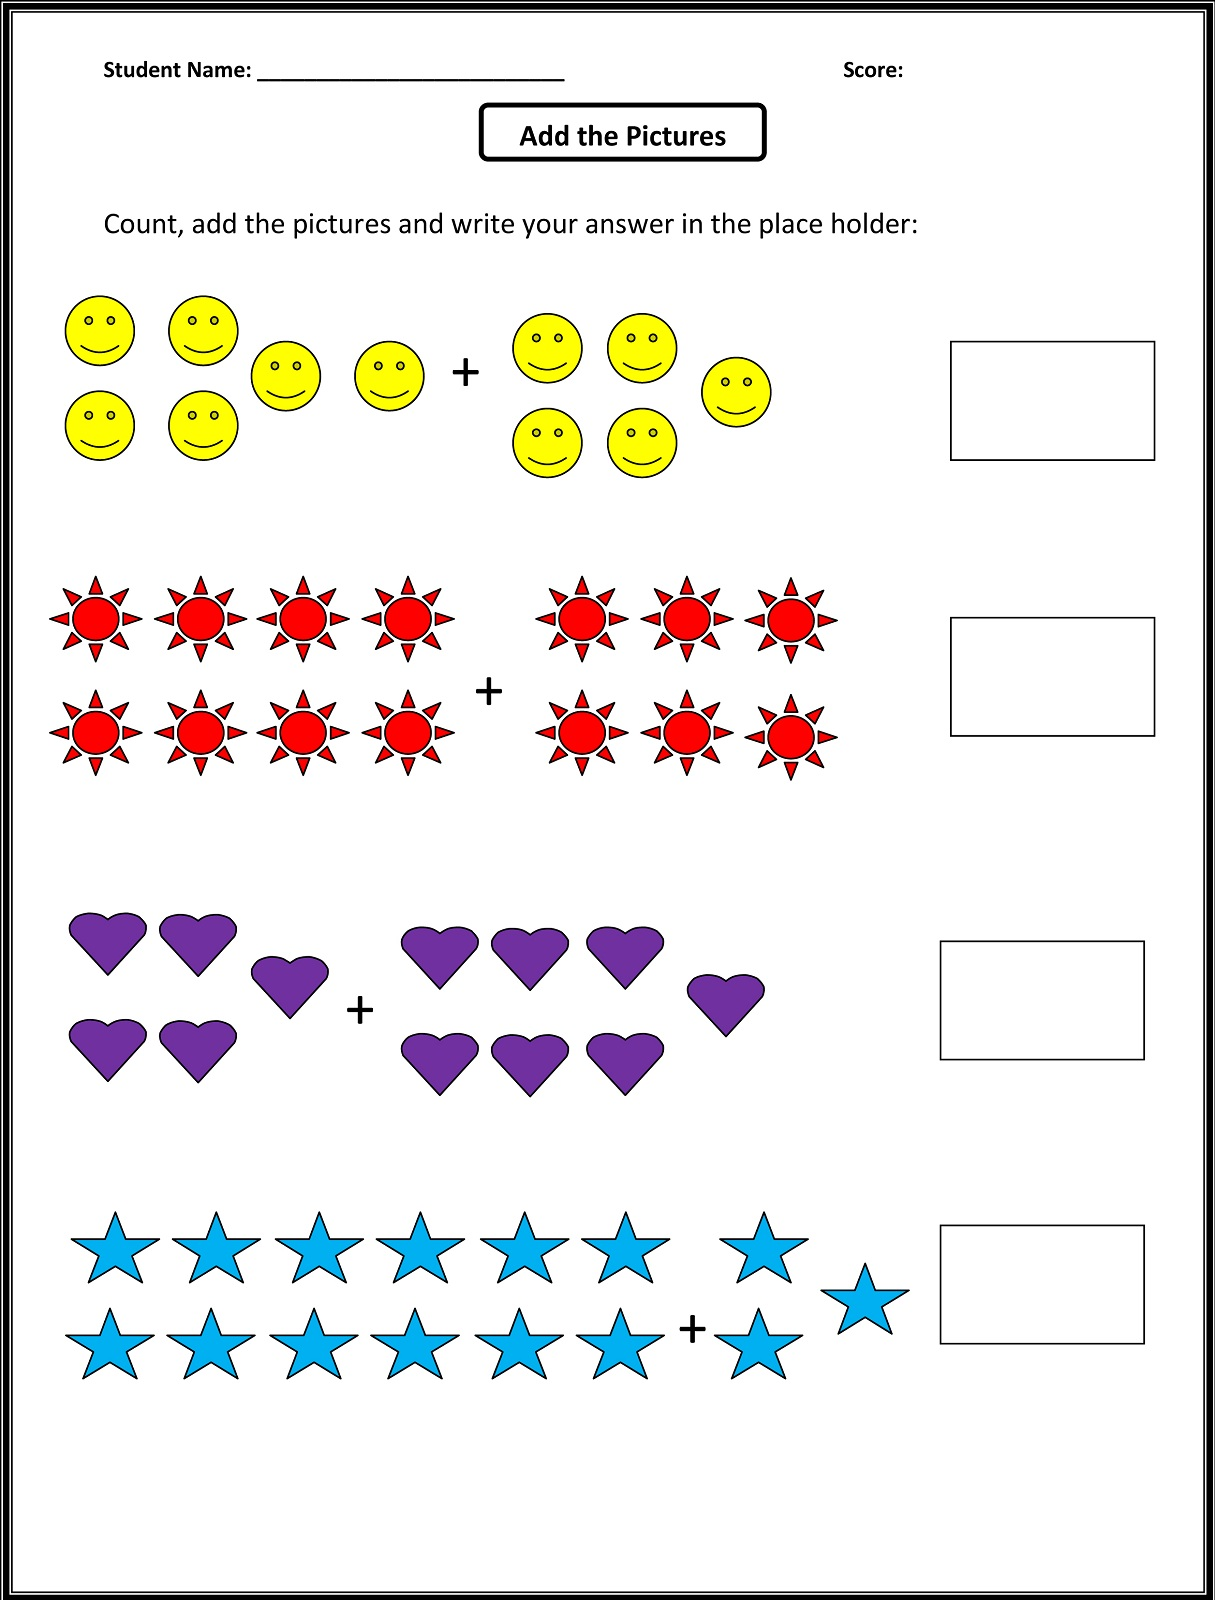 Worksheets for 1st Grade Math | Activity Shelter